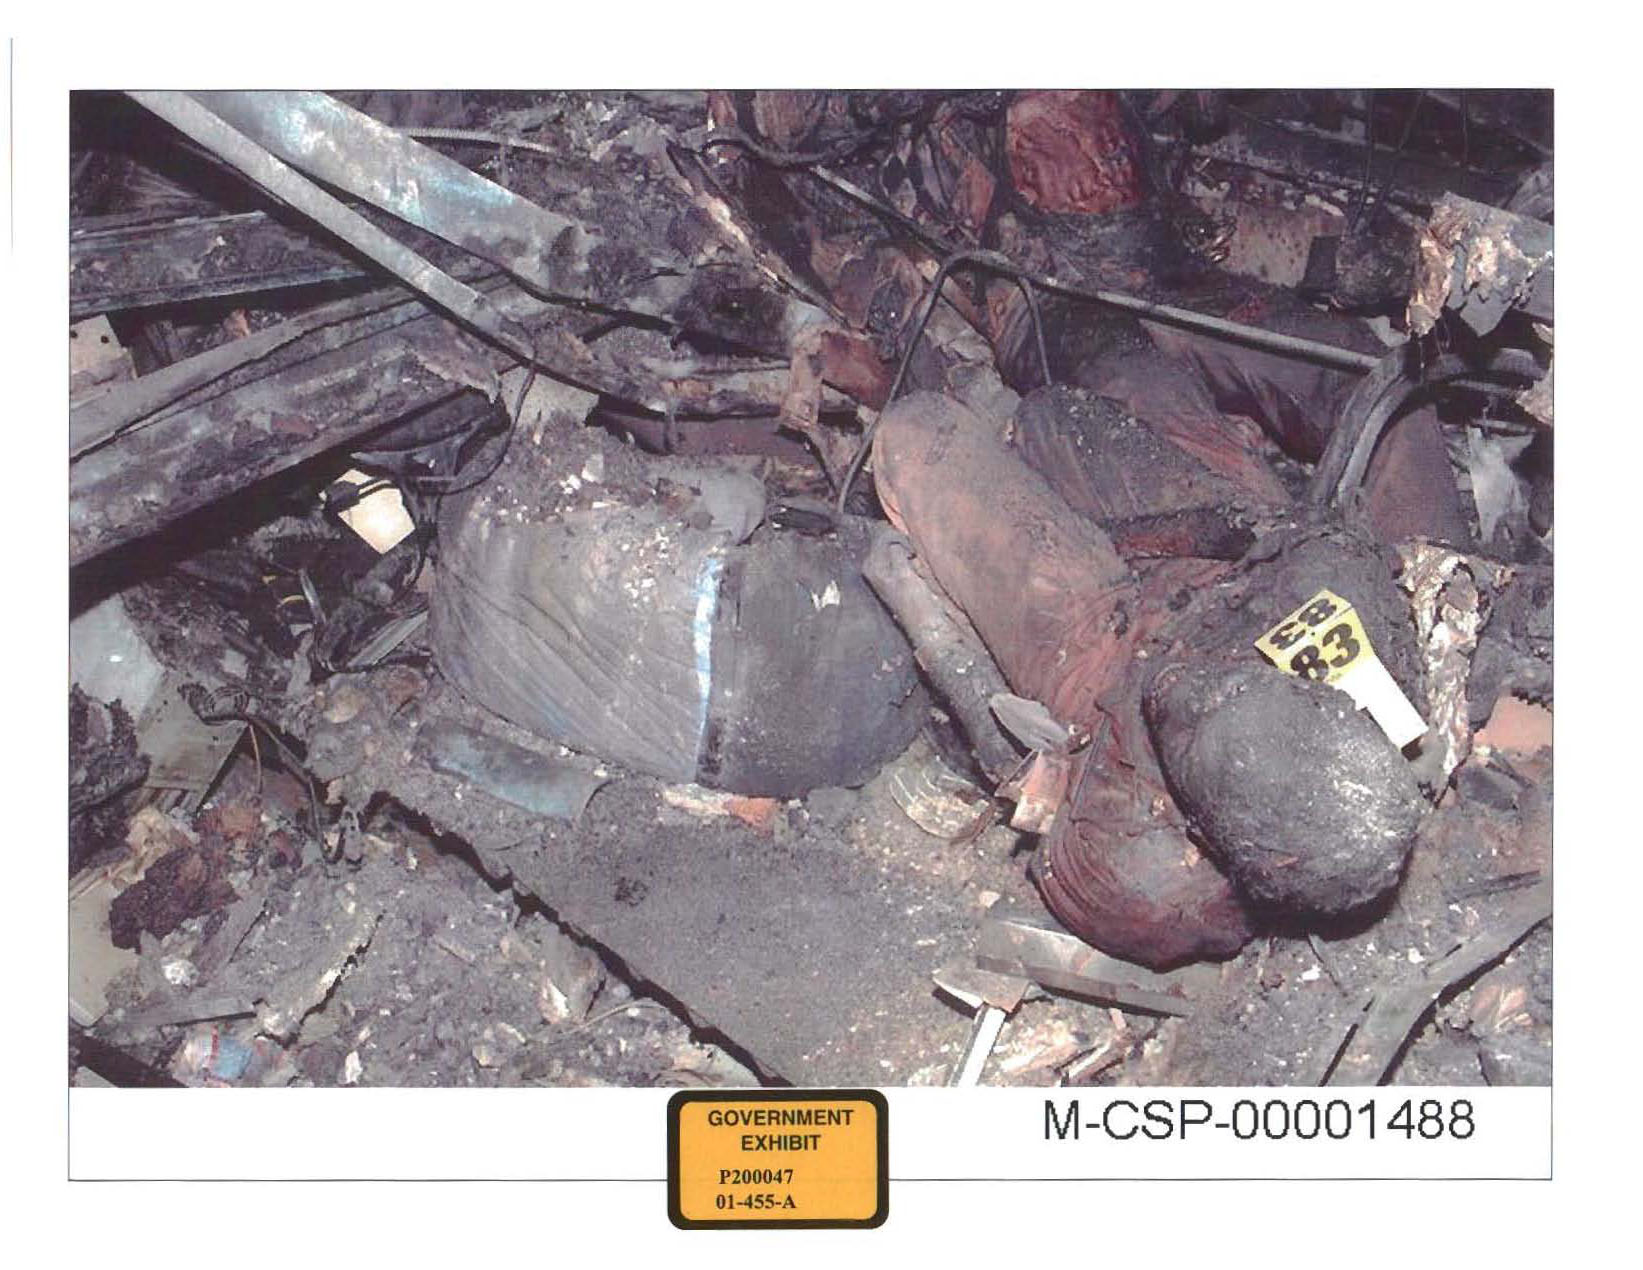 9 11 Dead Body Pictures http://911research.wtc7.net/pentagon/evidence/photos/humanremains.html